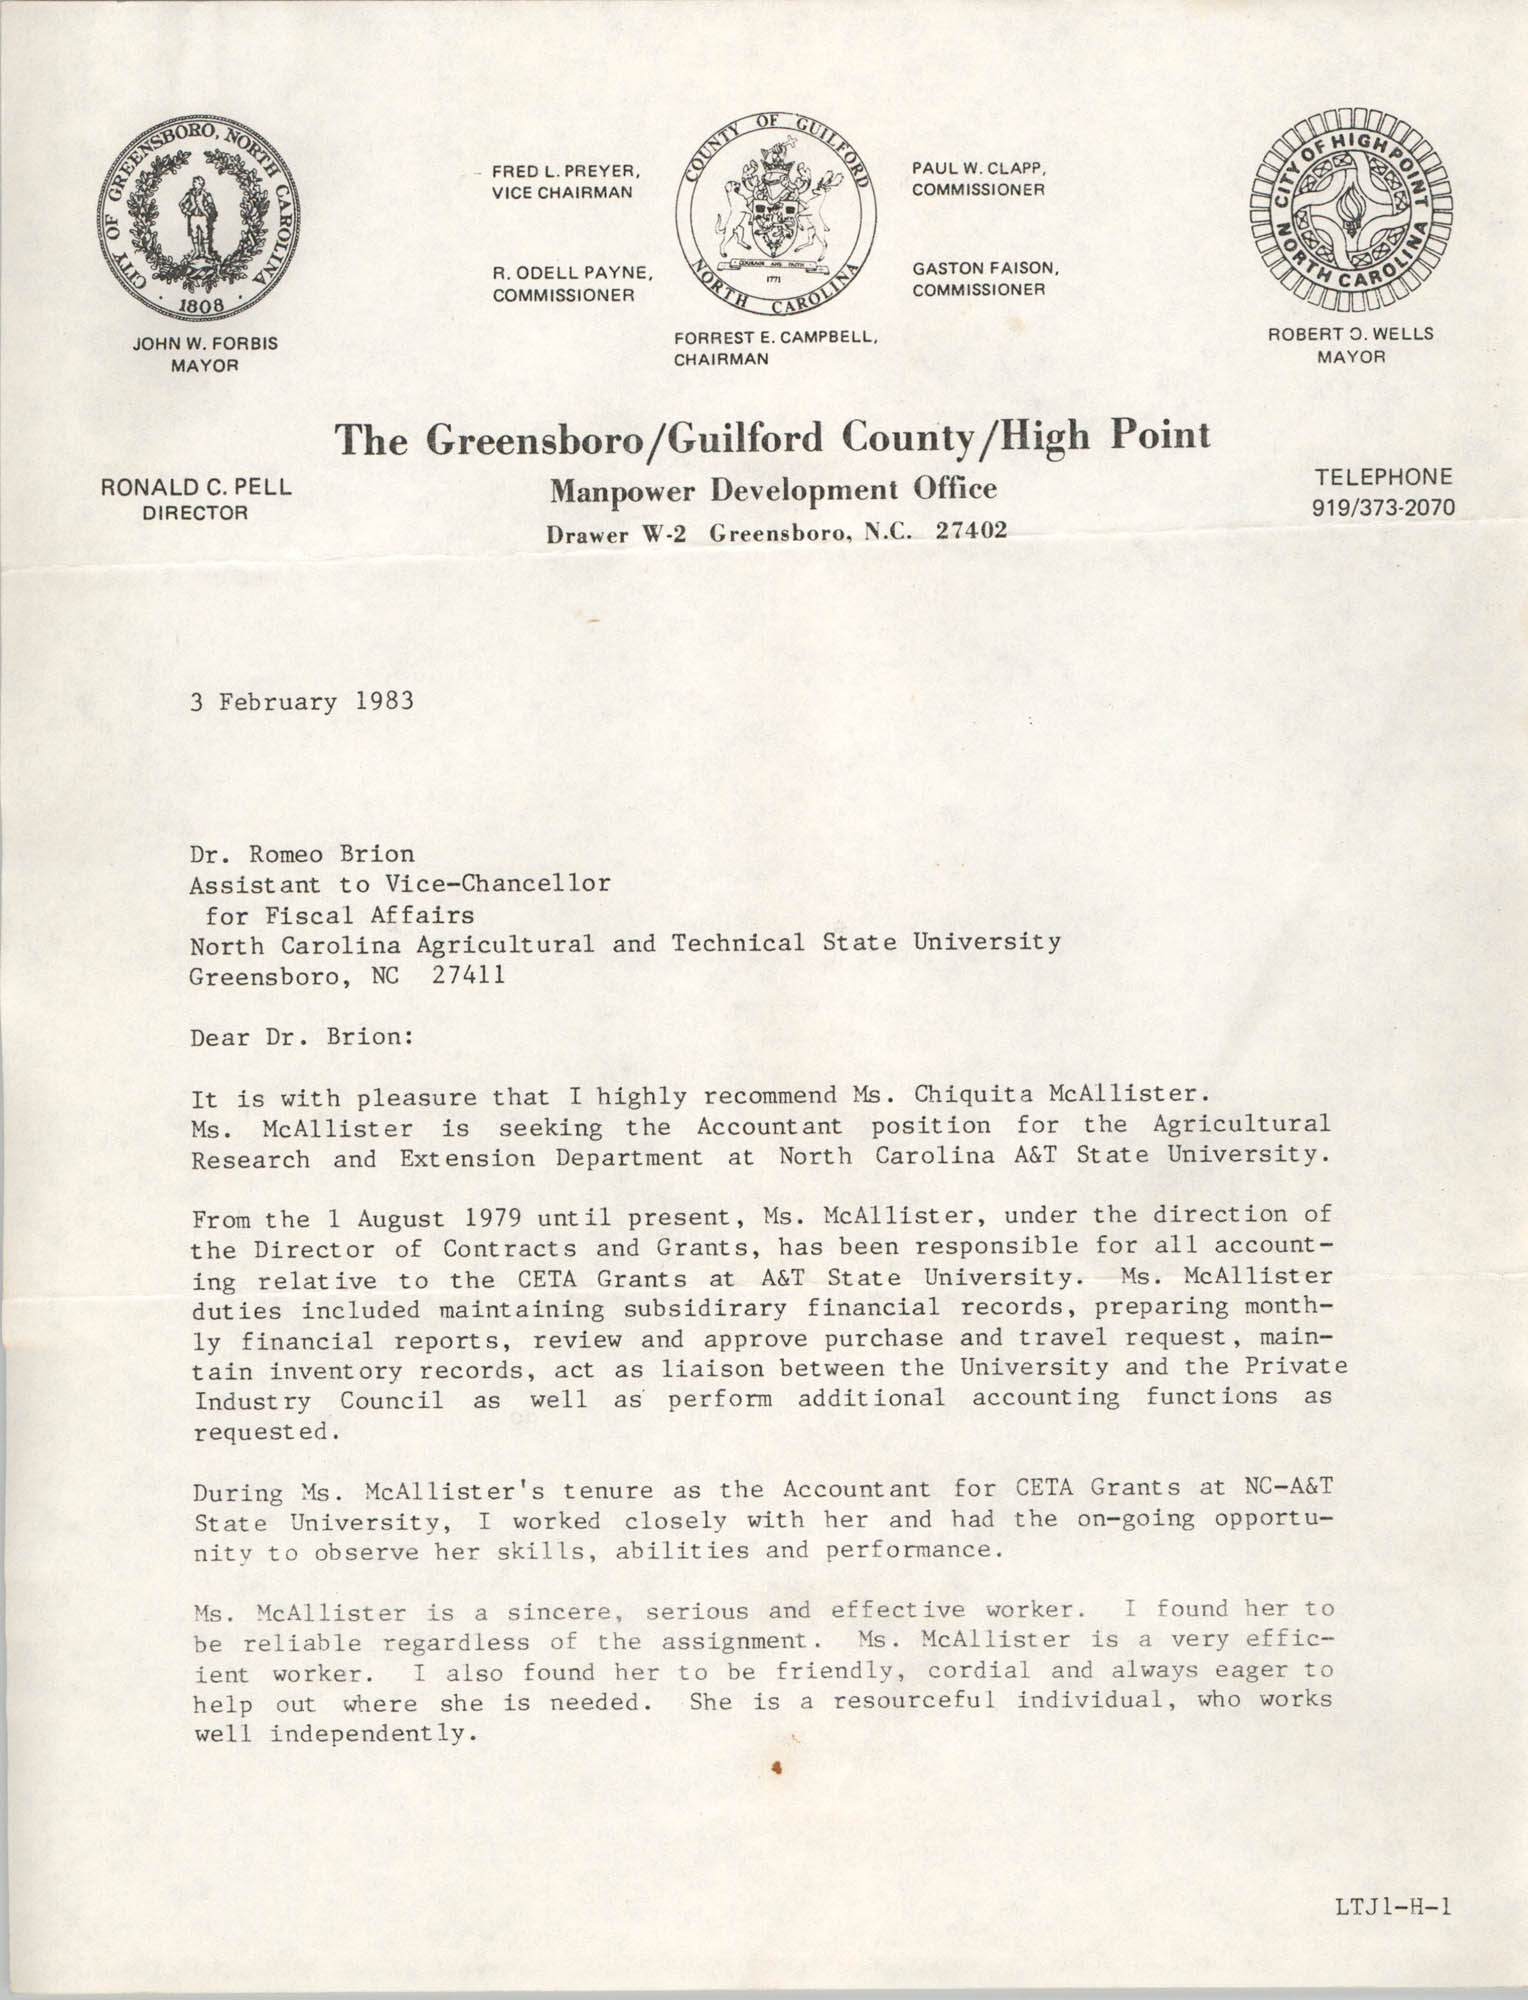 Letter from Cleveland Sellers to Romeo Brion, February 3, 1983